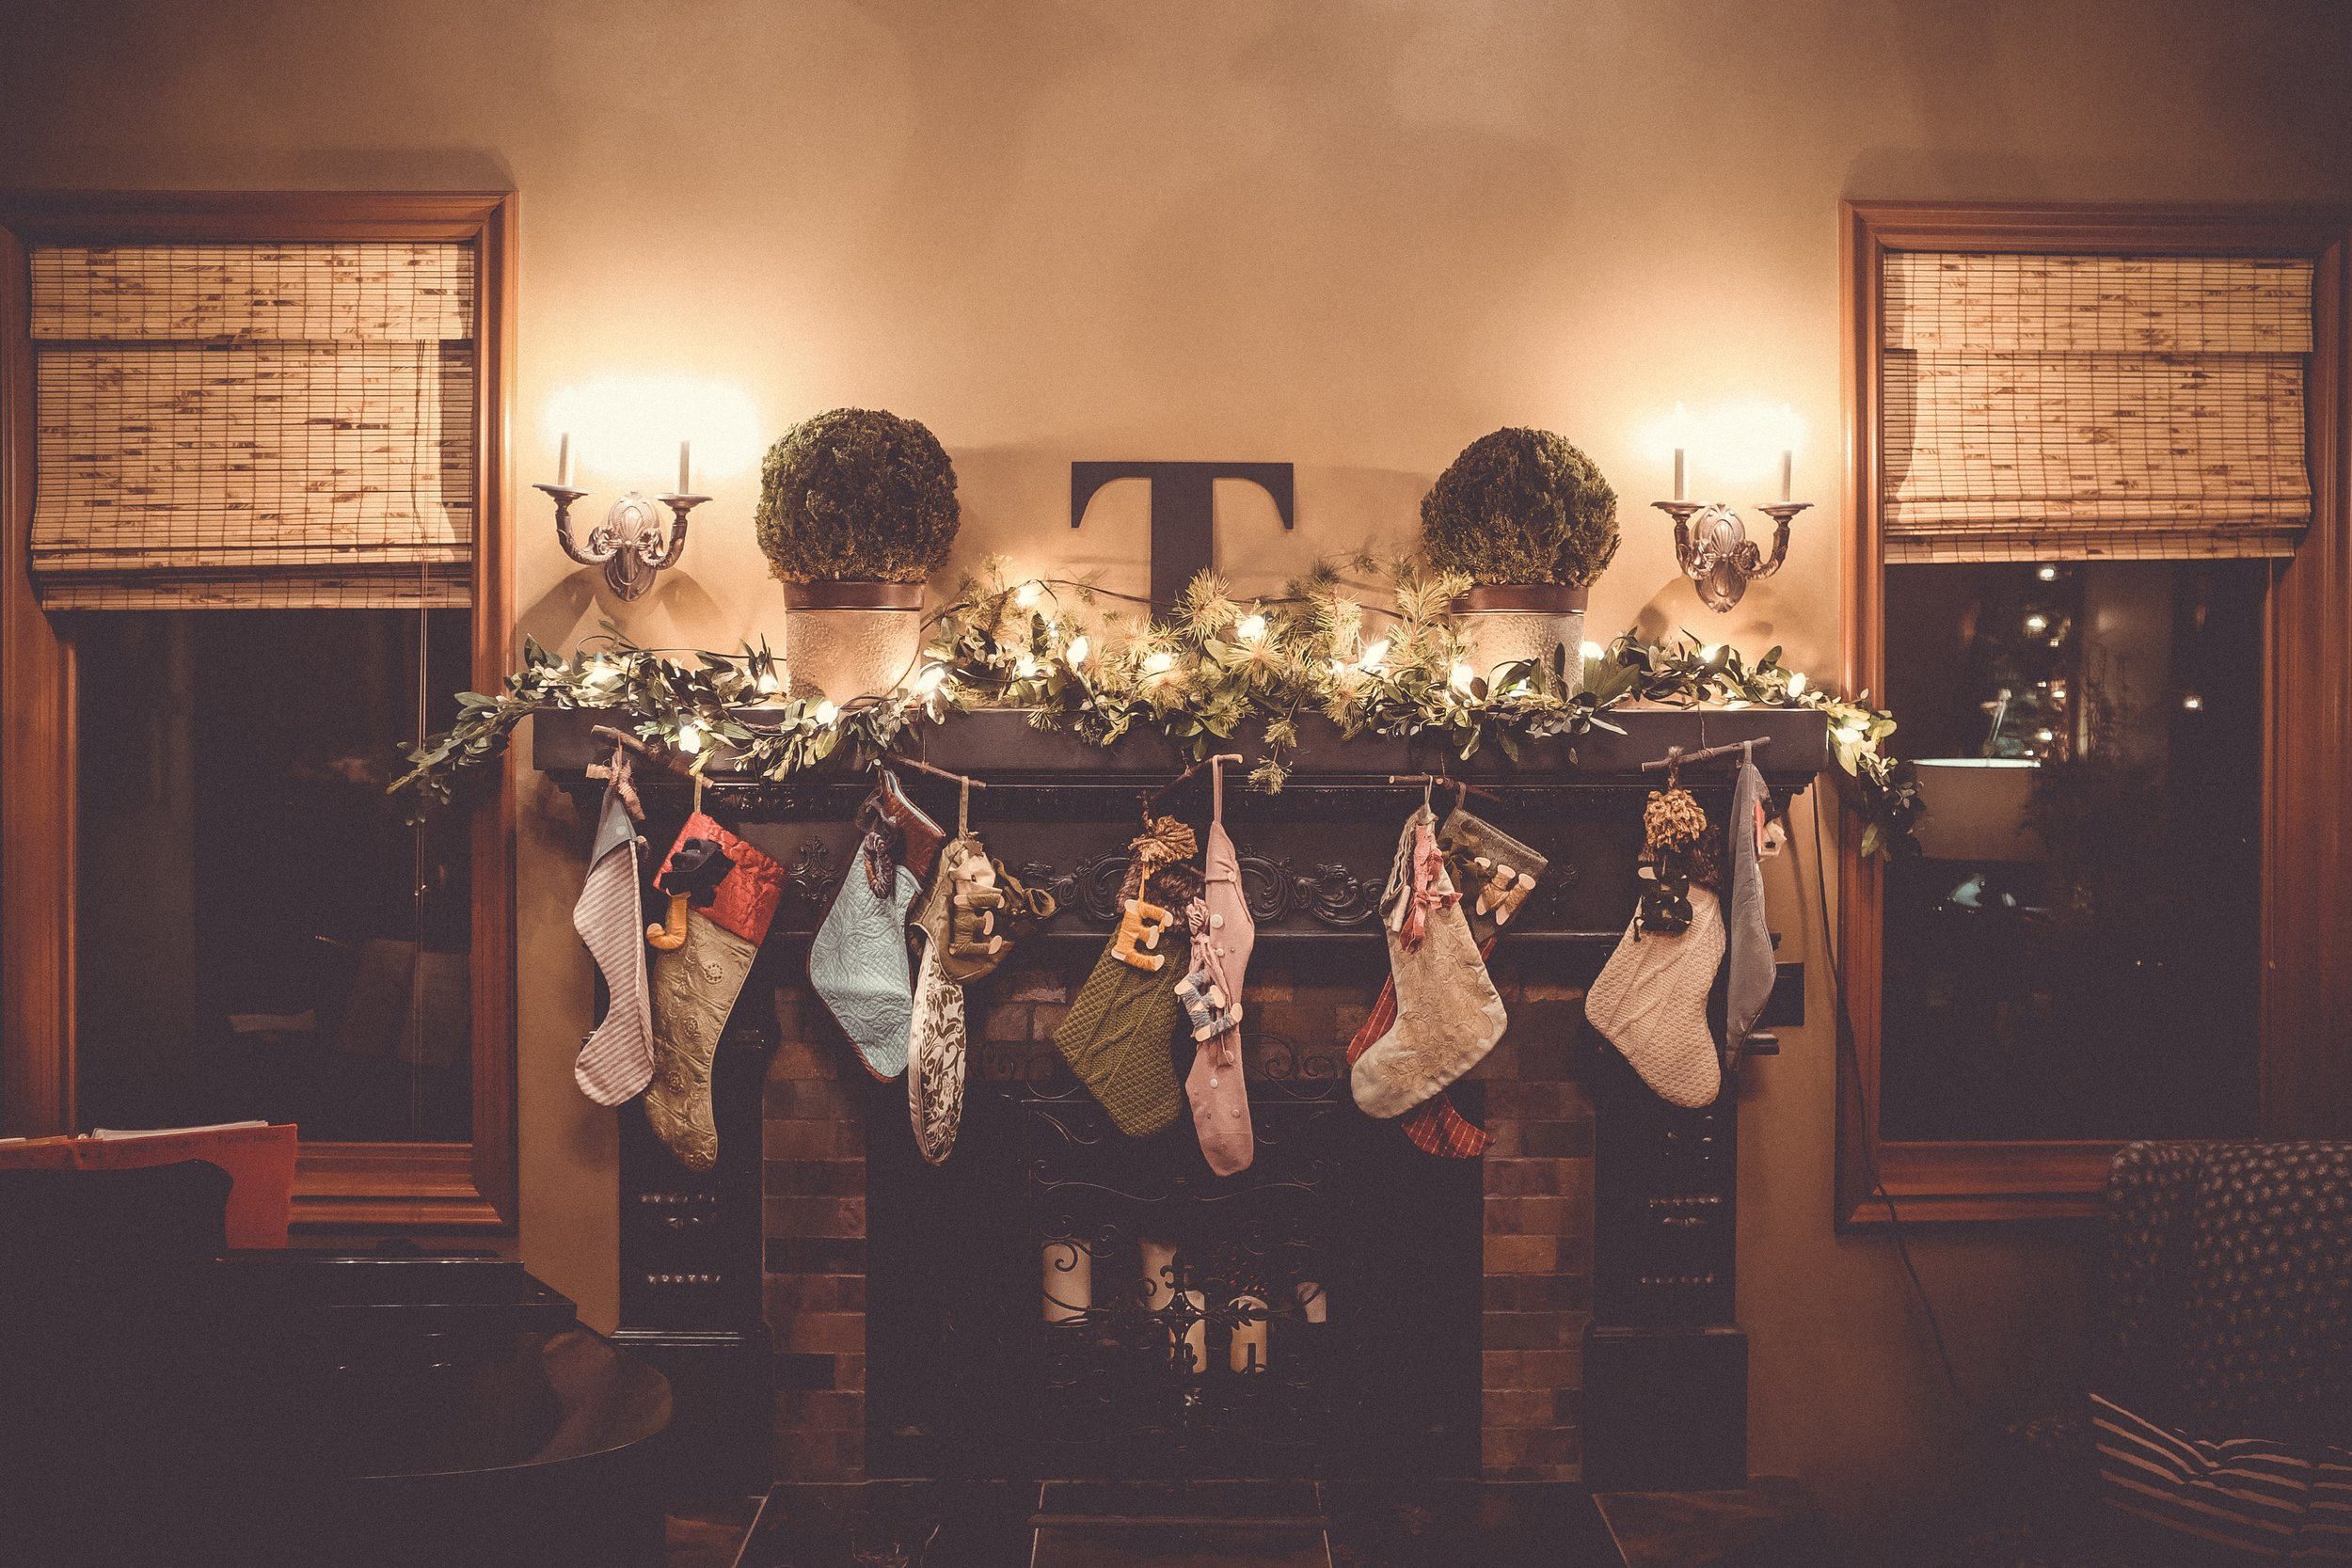 'Twas the night before Christmas... - Photo by Wesley Tingeyon Unsplash